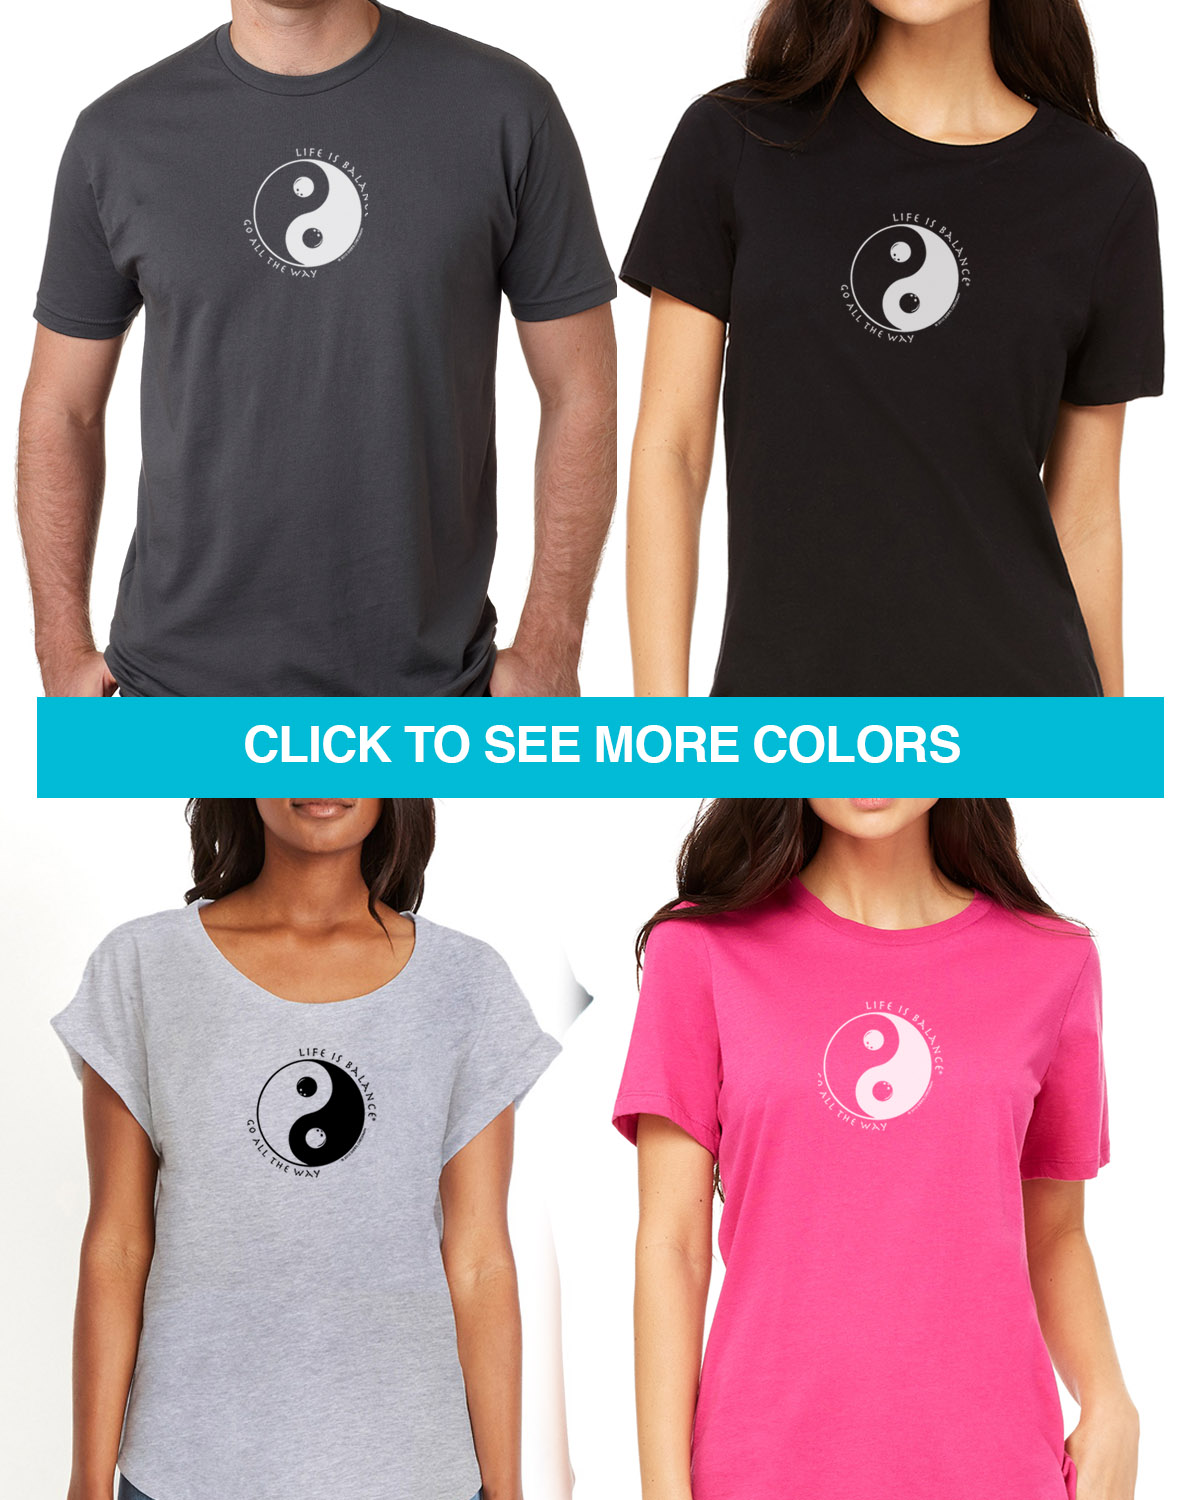 Short sleeve bowling t-shirts for Men and Women. Women's fitted styles and a unisex style for men and women